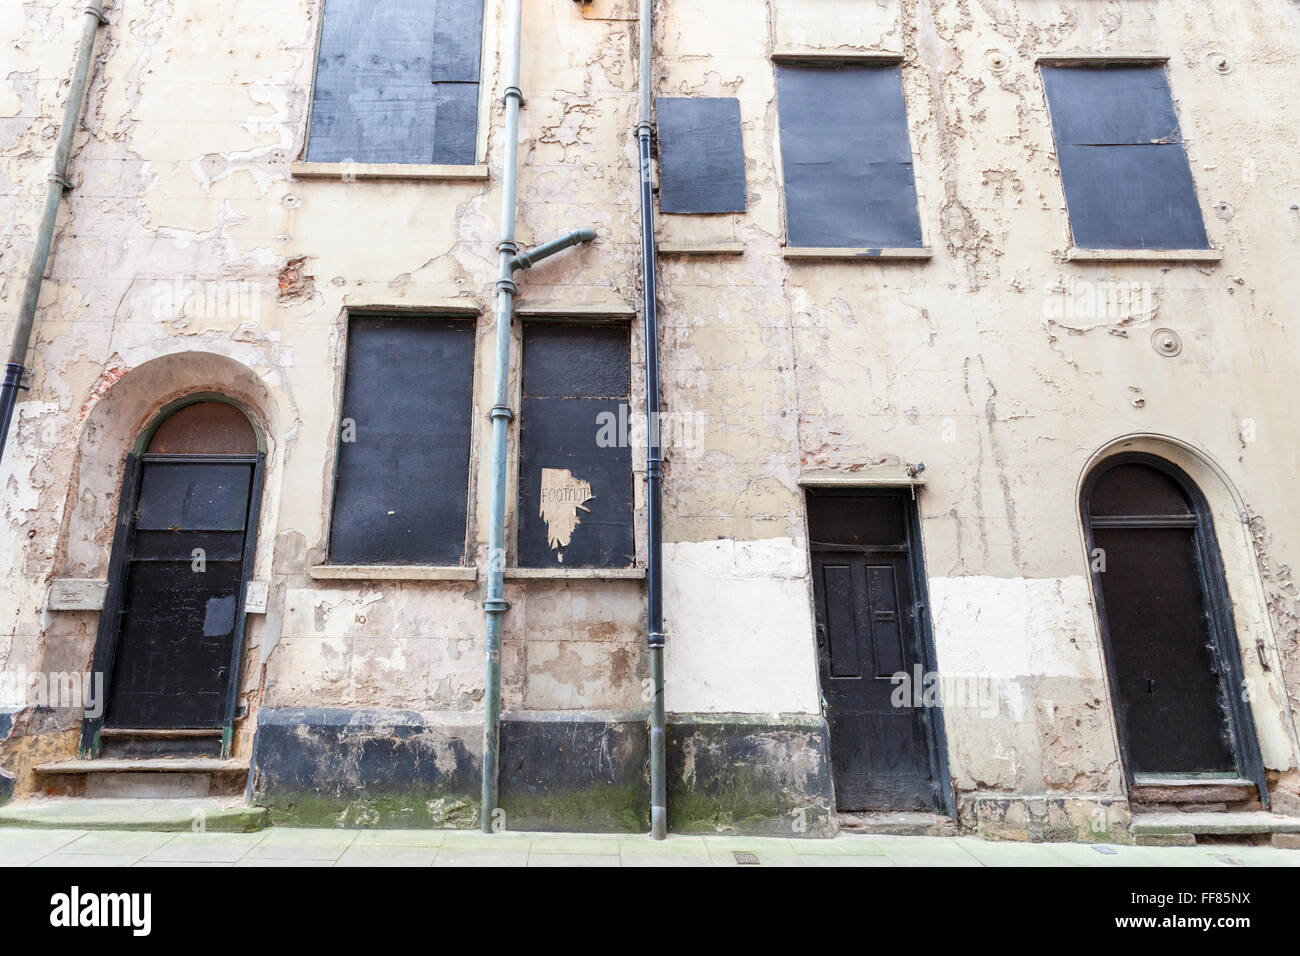 Wall and boarded up windows and doors on a 17th century town house that has fallen into disrepair, Nottingham, England, - Stock Image